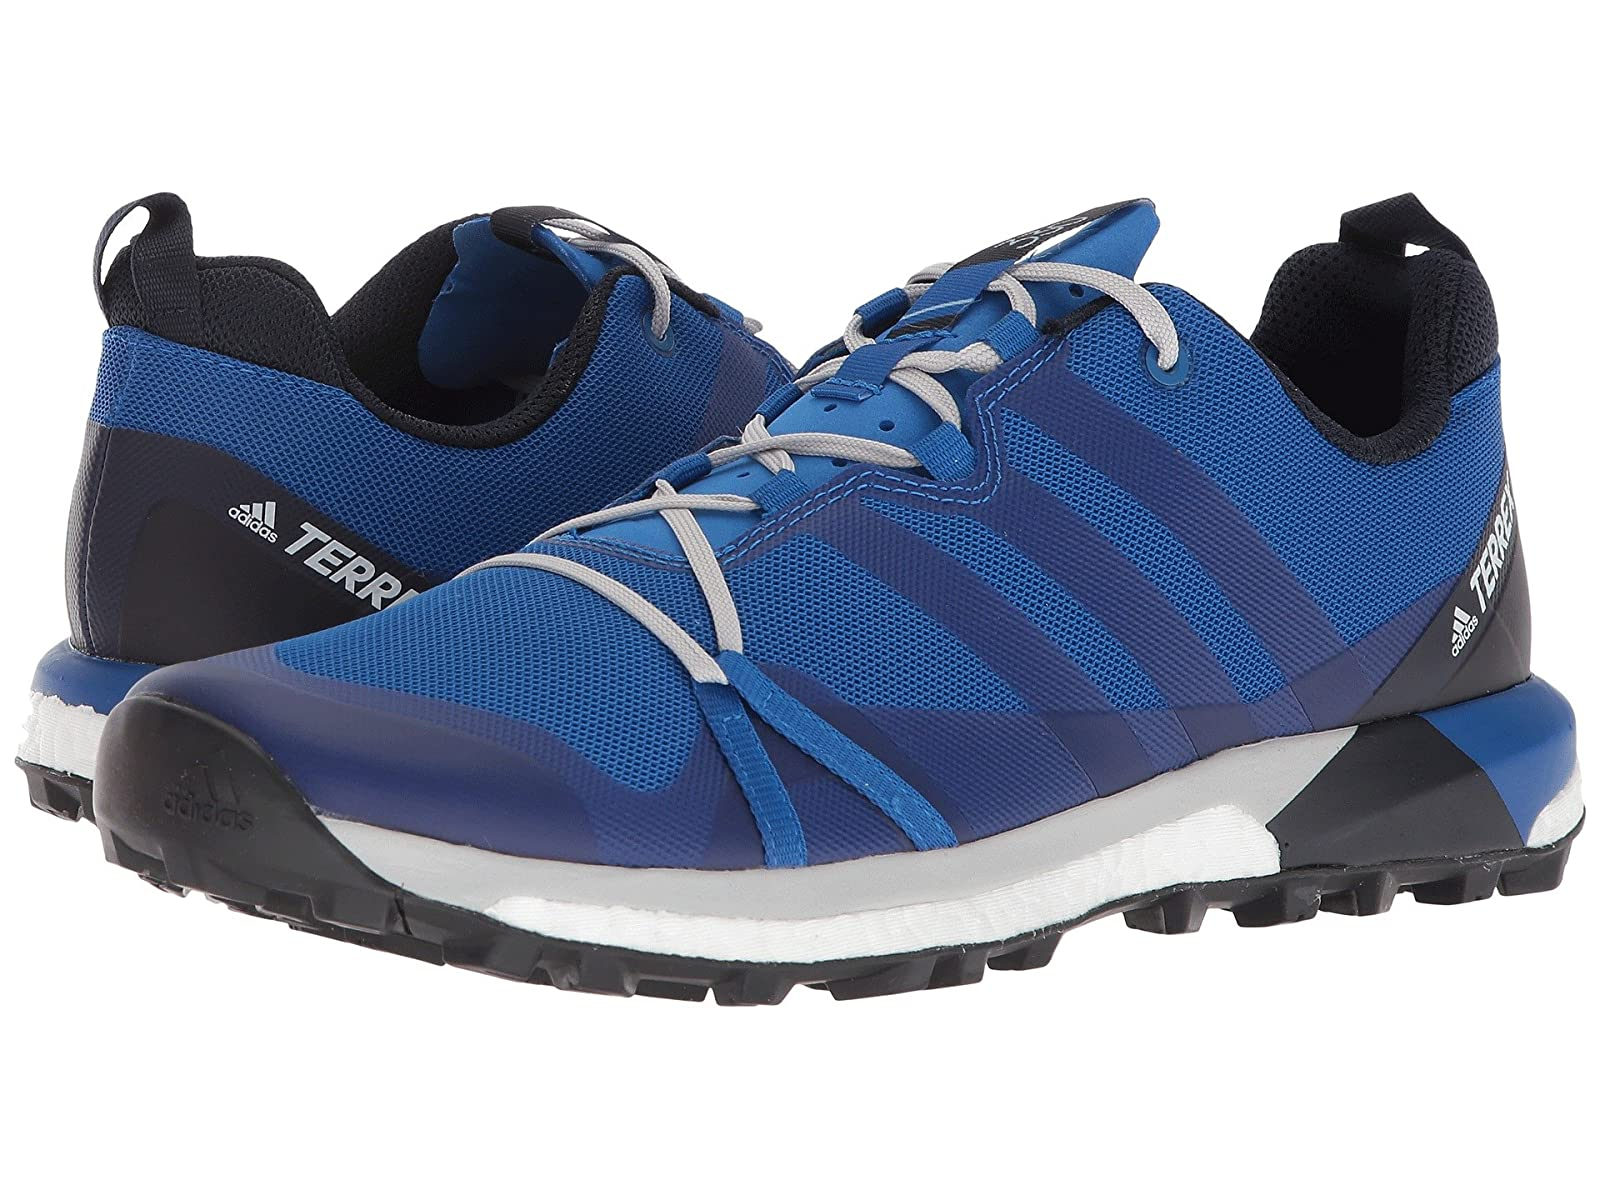 adidas Outdoor Terrex AgravicAtmospheric grades have affordable shoes